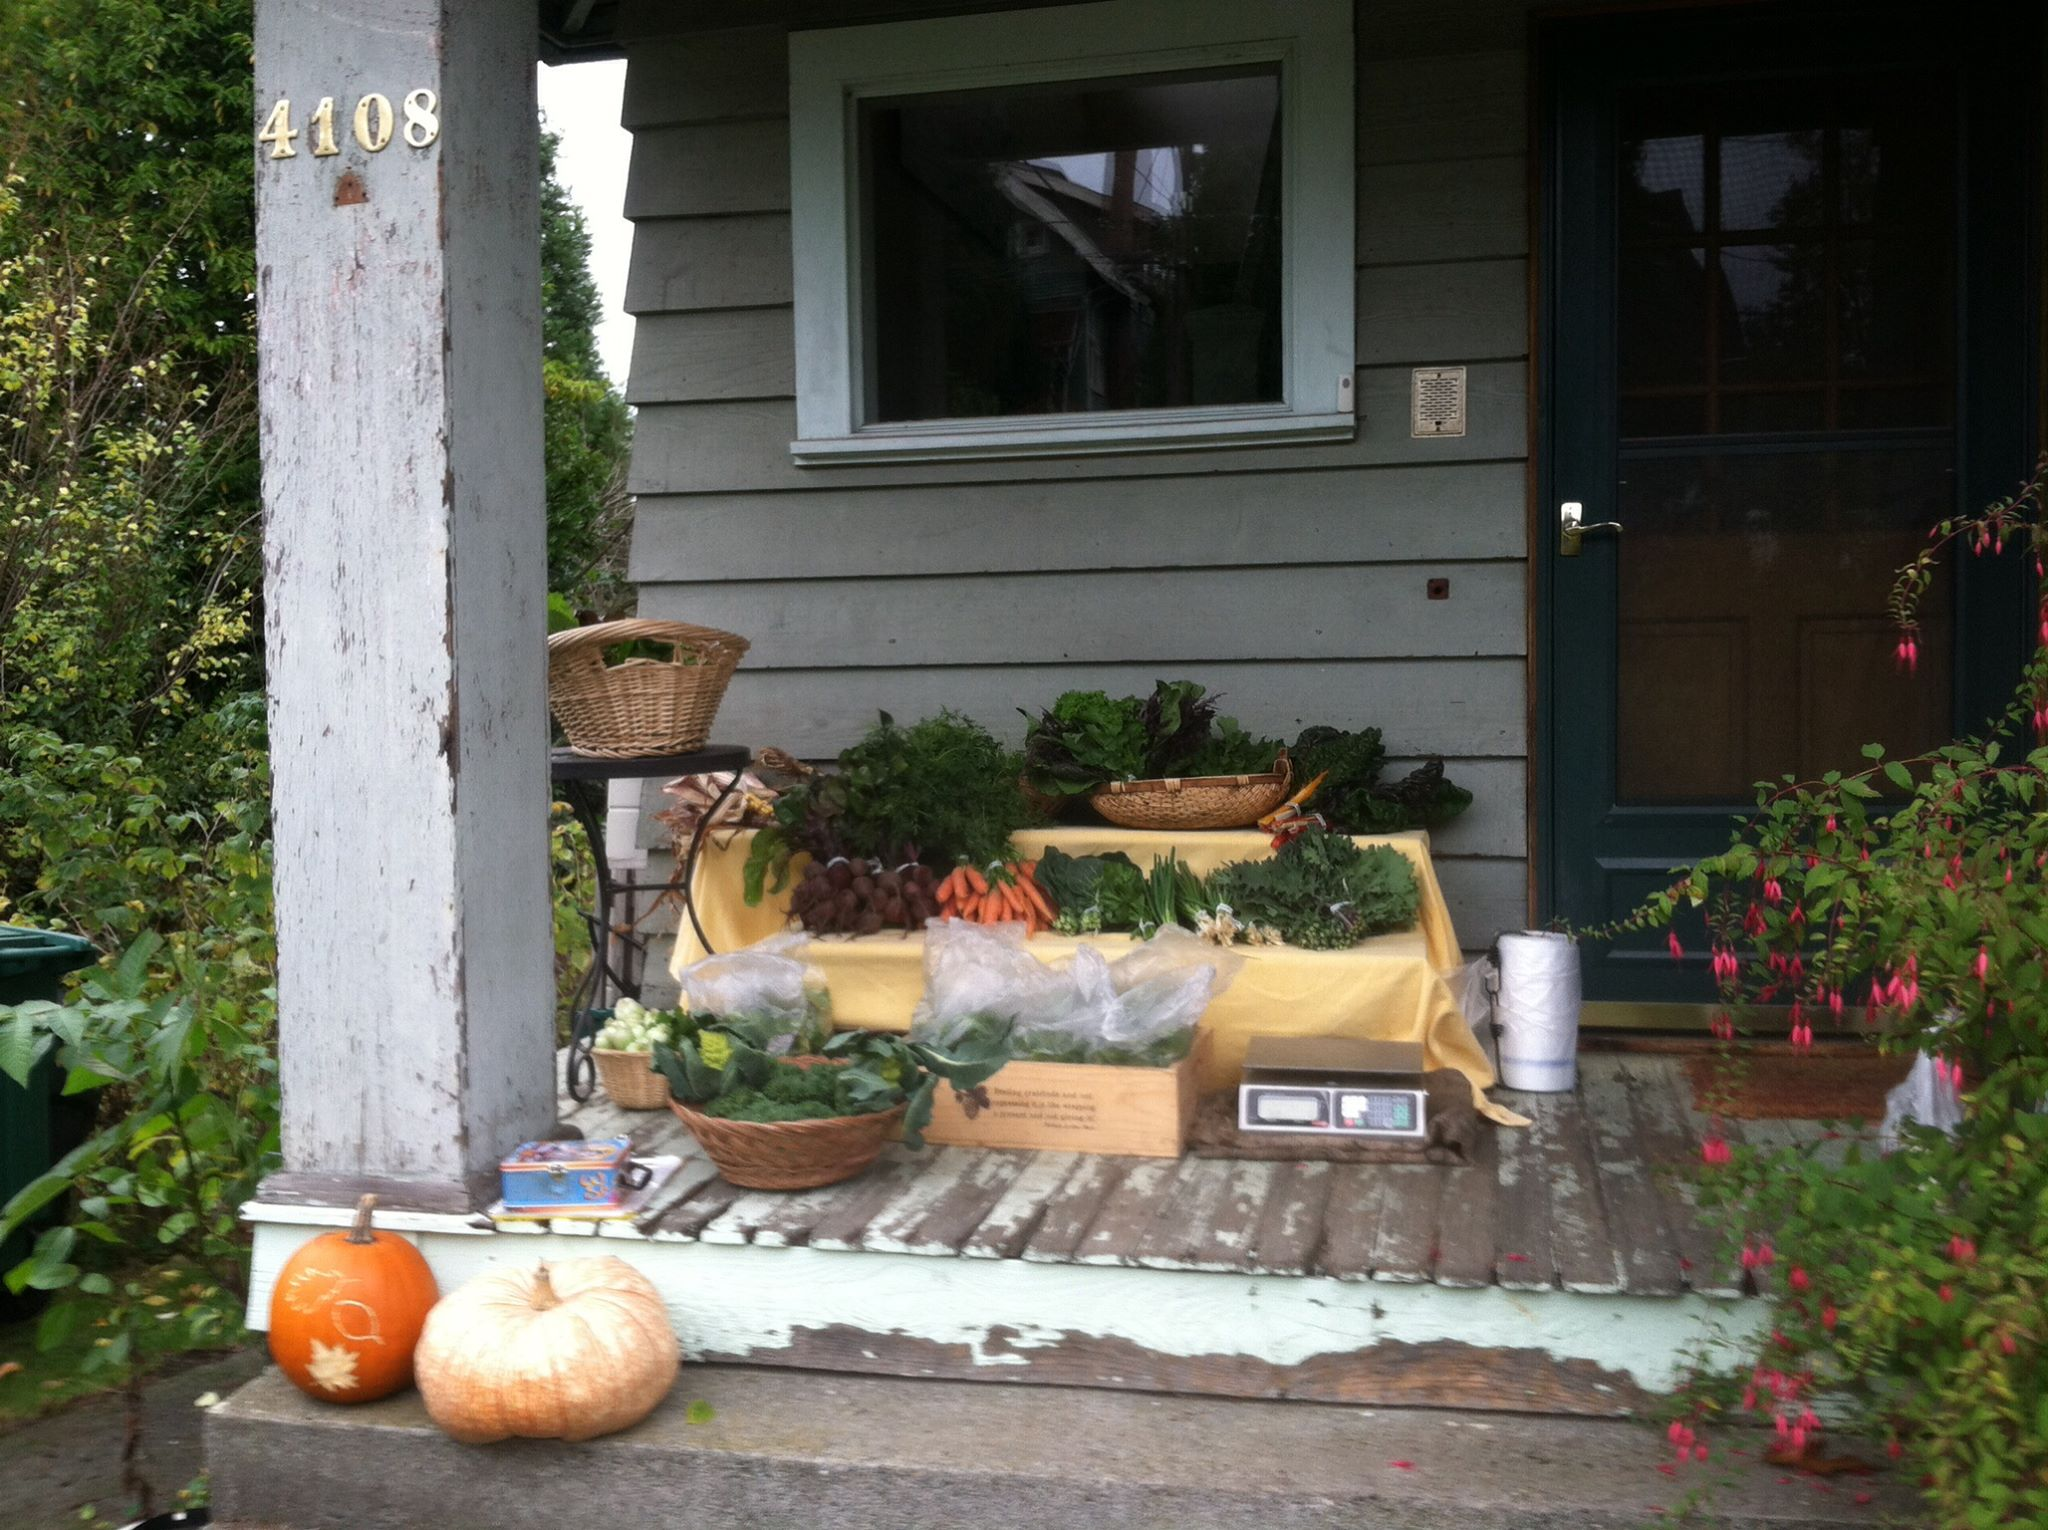 SF photo City Grown Seattle porch shop